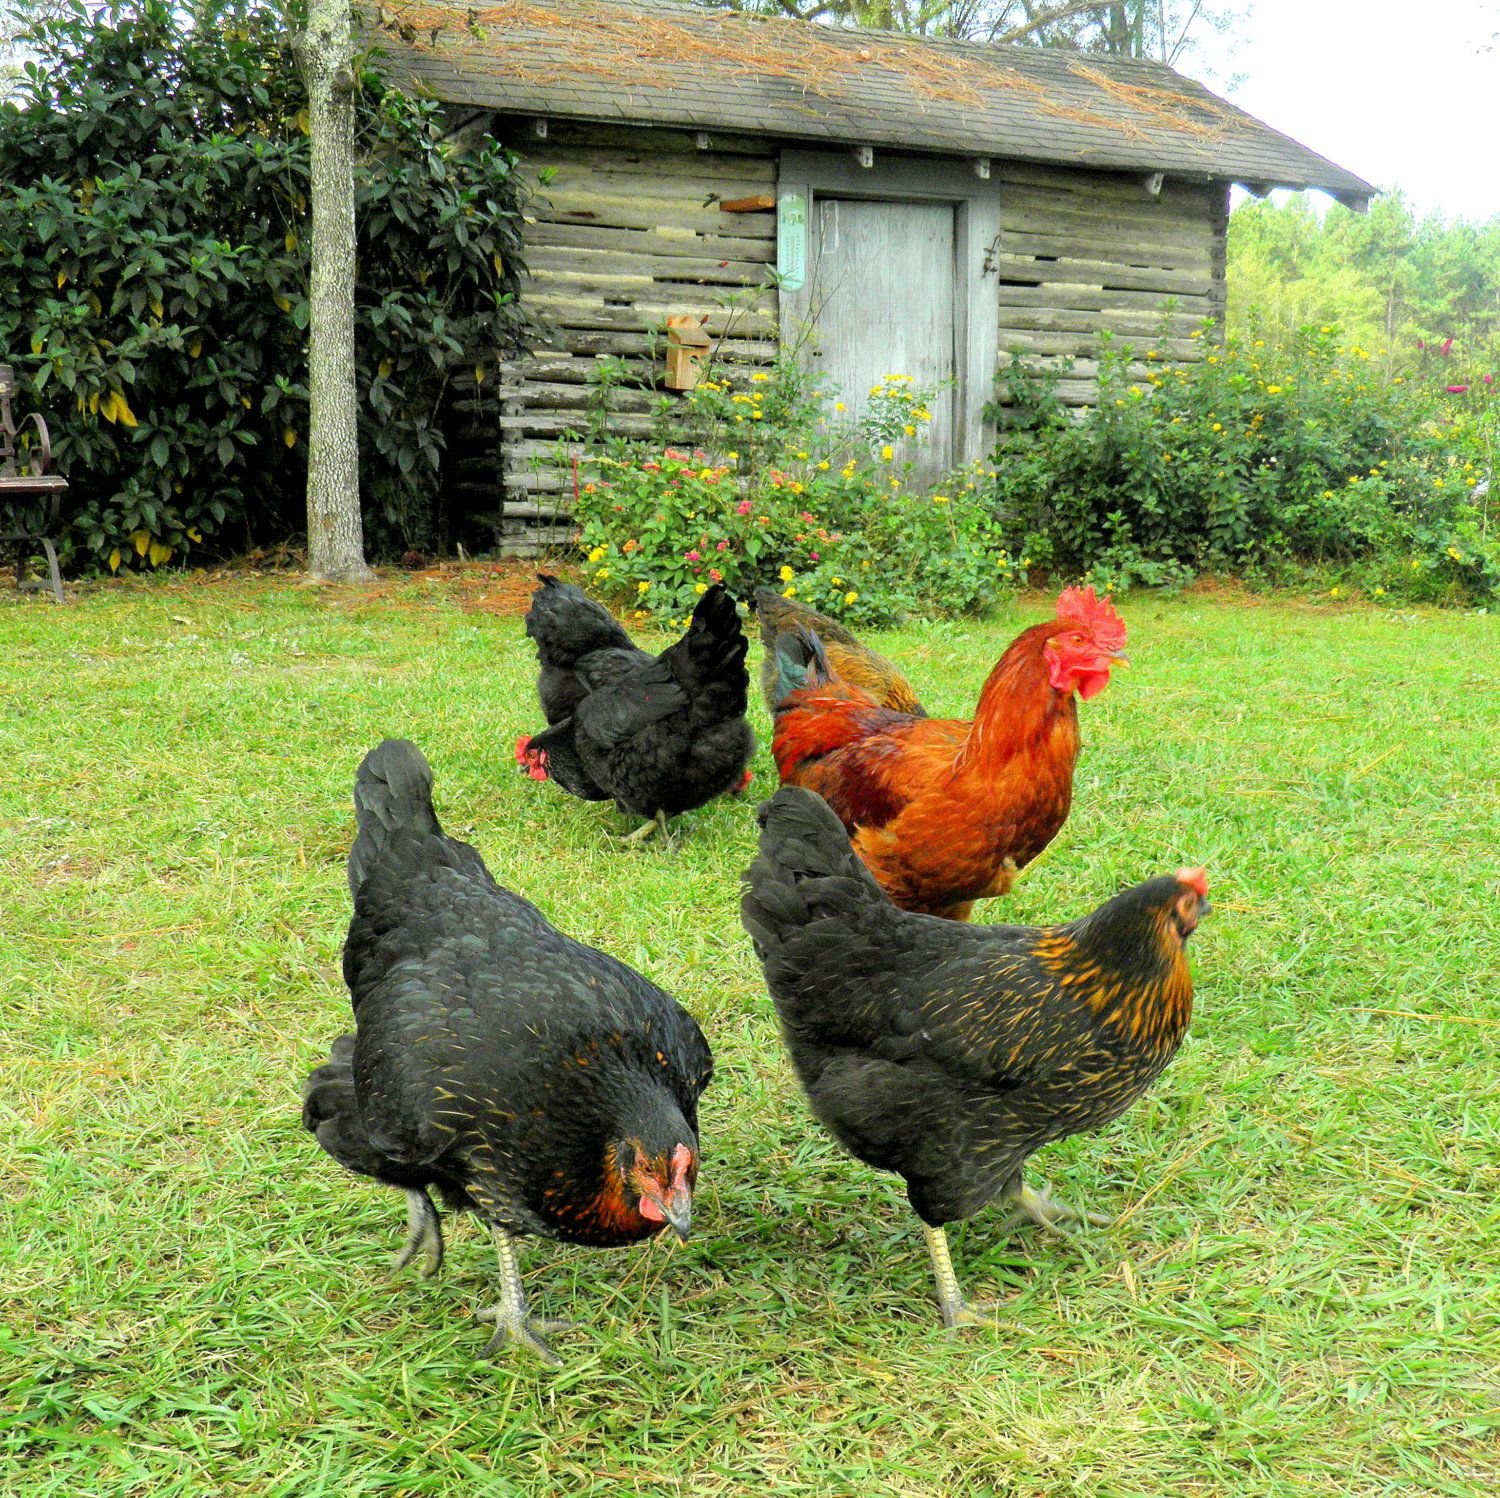 A few of my hens and the rooster in front of the old cook house